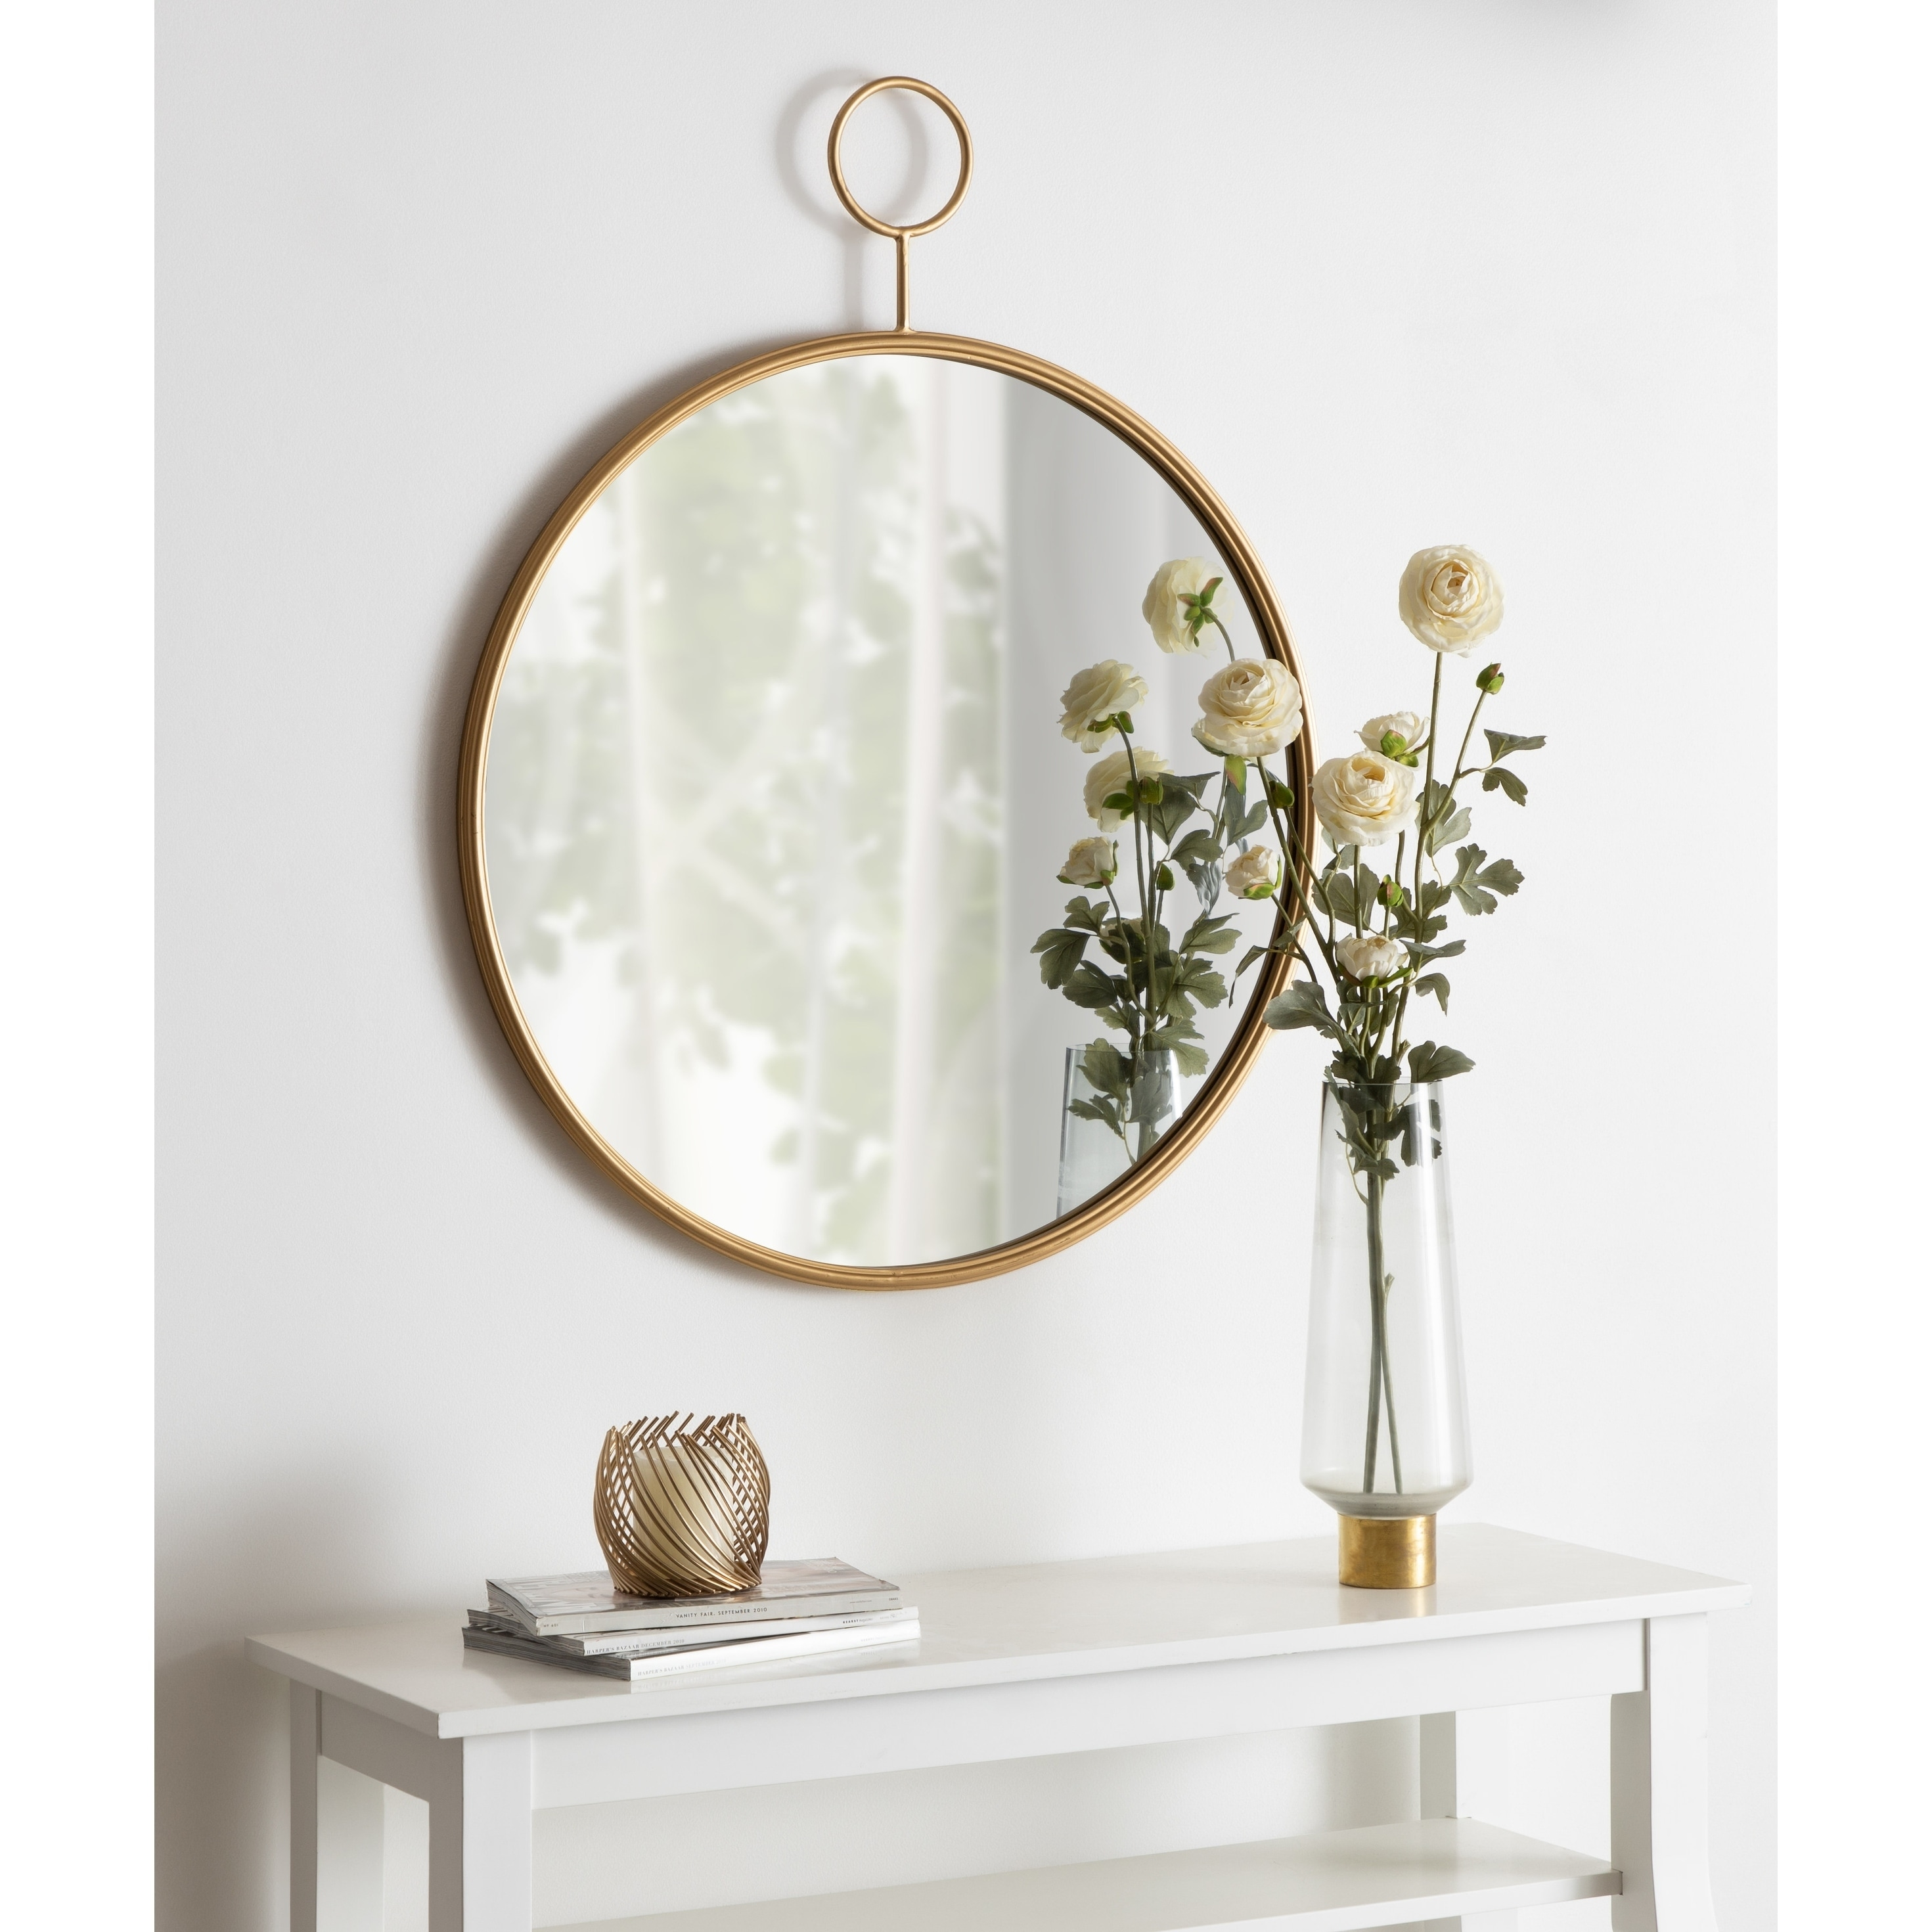 Shop Kate And Laurel Chayce Mid Century Modern Round Wall Mirror Gold 30x37 75 Overstock 30025019